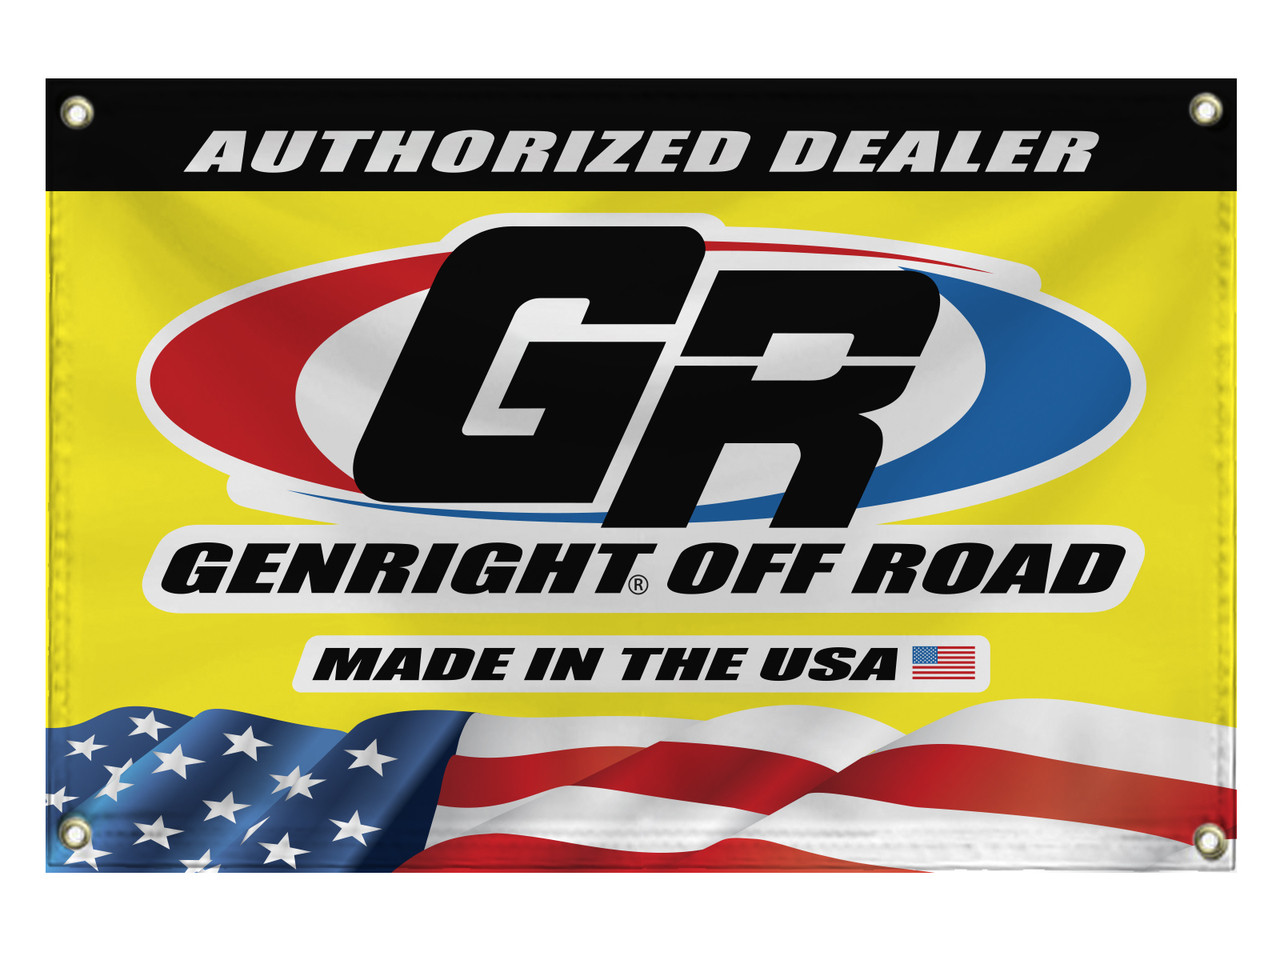 GenRight 2'x3' Authorized Dealer Banner